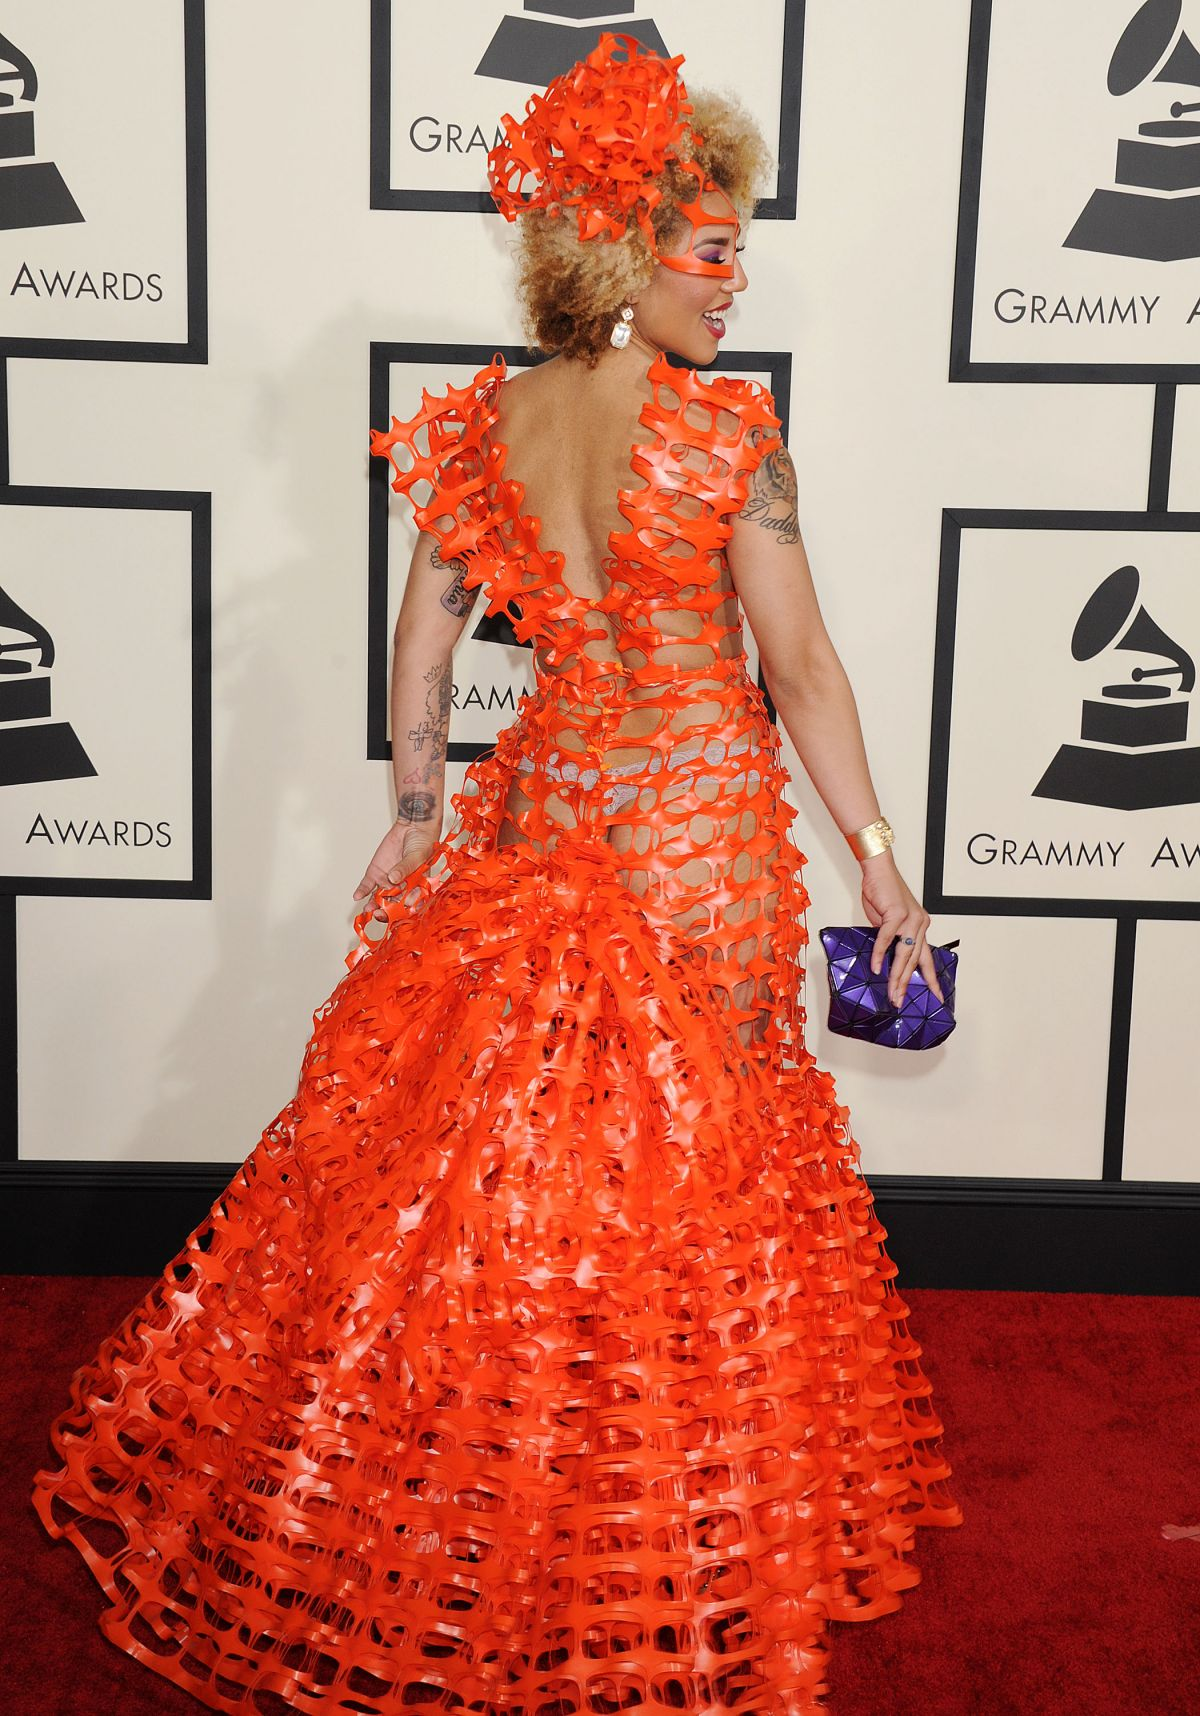 joy villa - photo #32